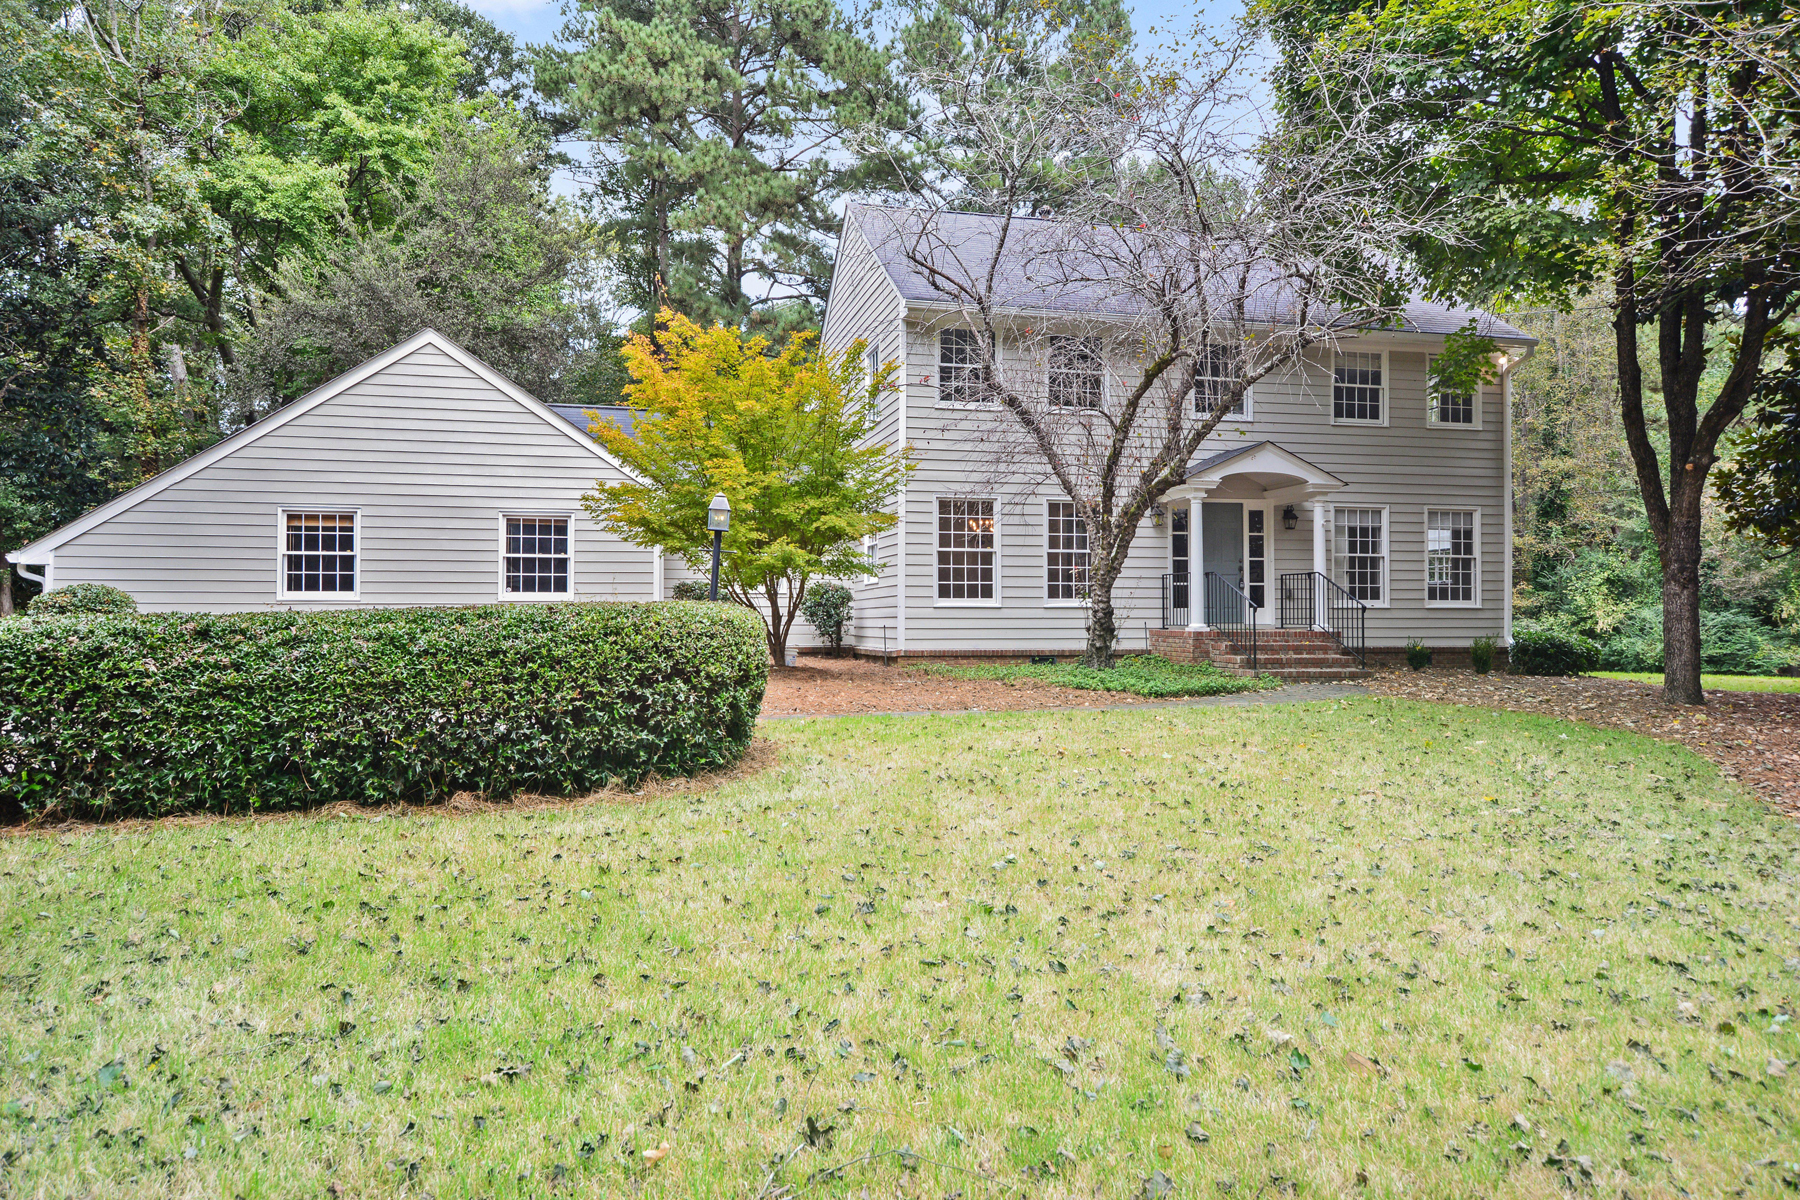 Single Family Home for Sale at Conveniently Located And Move-In Ready 3145 Farmington Dr Atlanta, Georgia 30339 United States